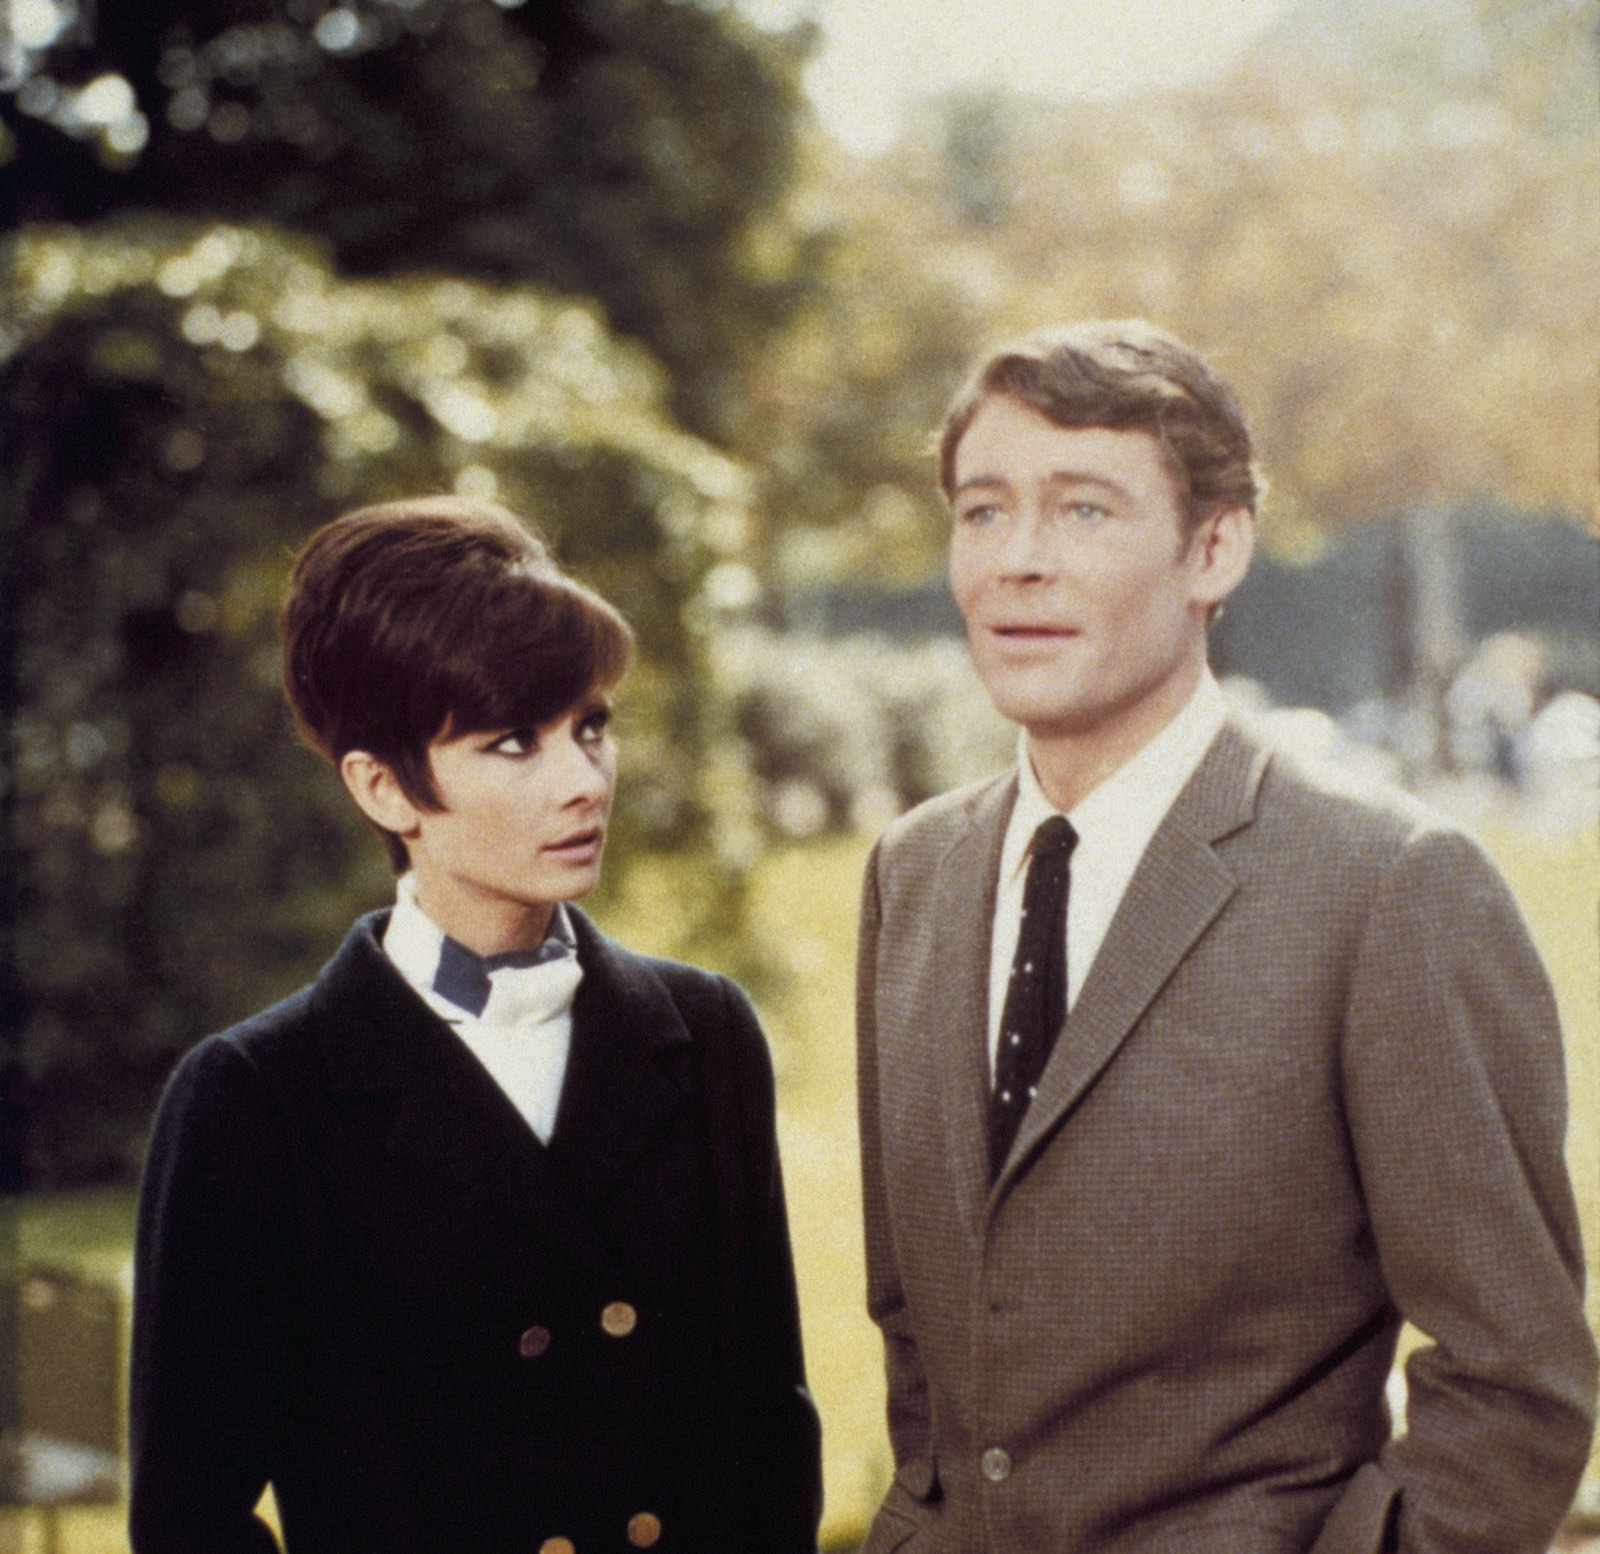 Audrey-Hepburn-in-How-To-Steal-a-Million